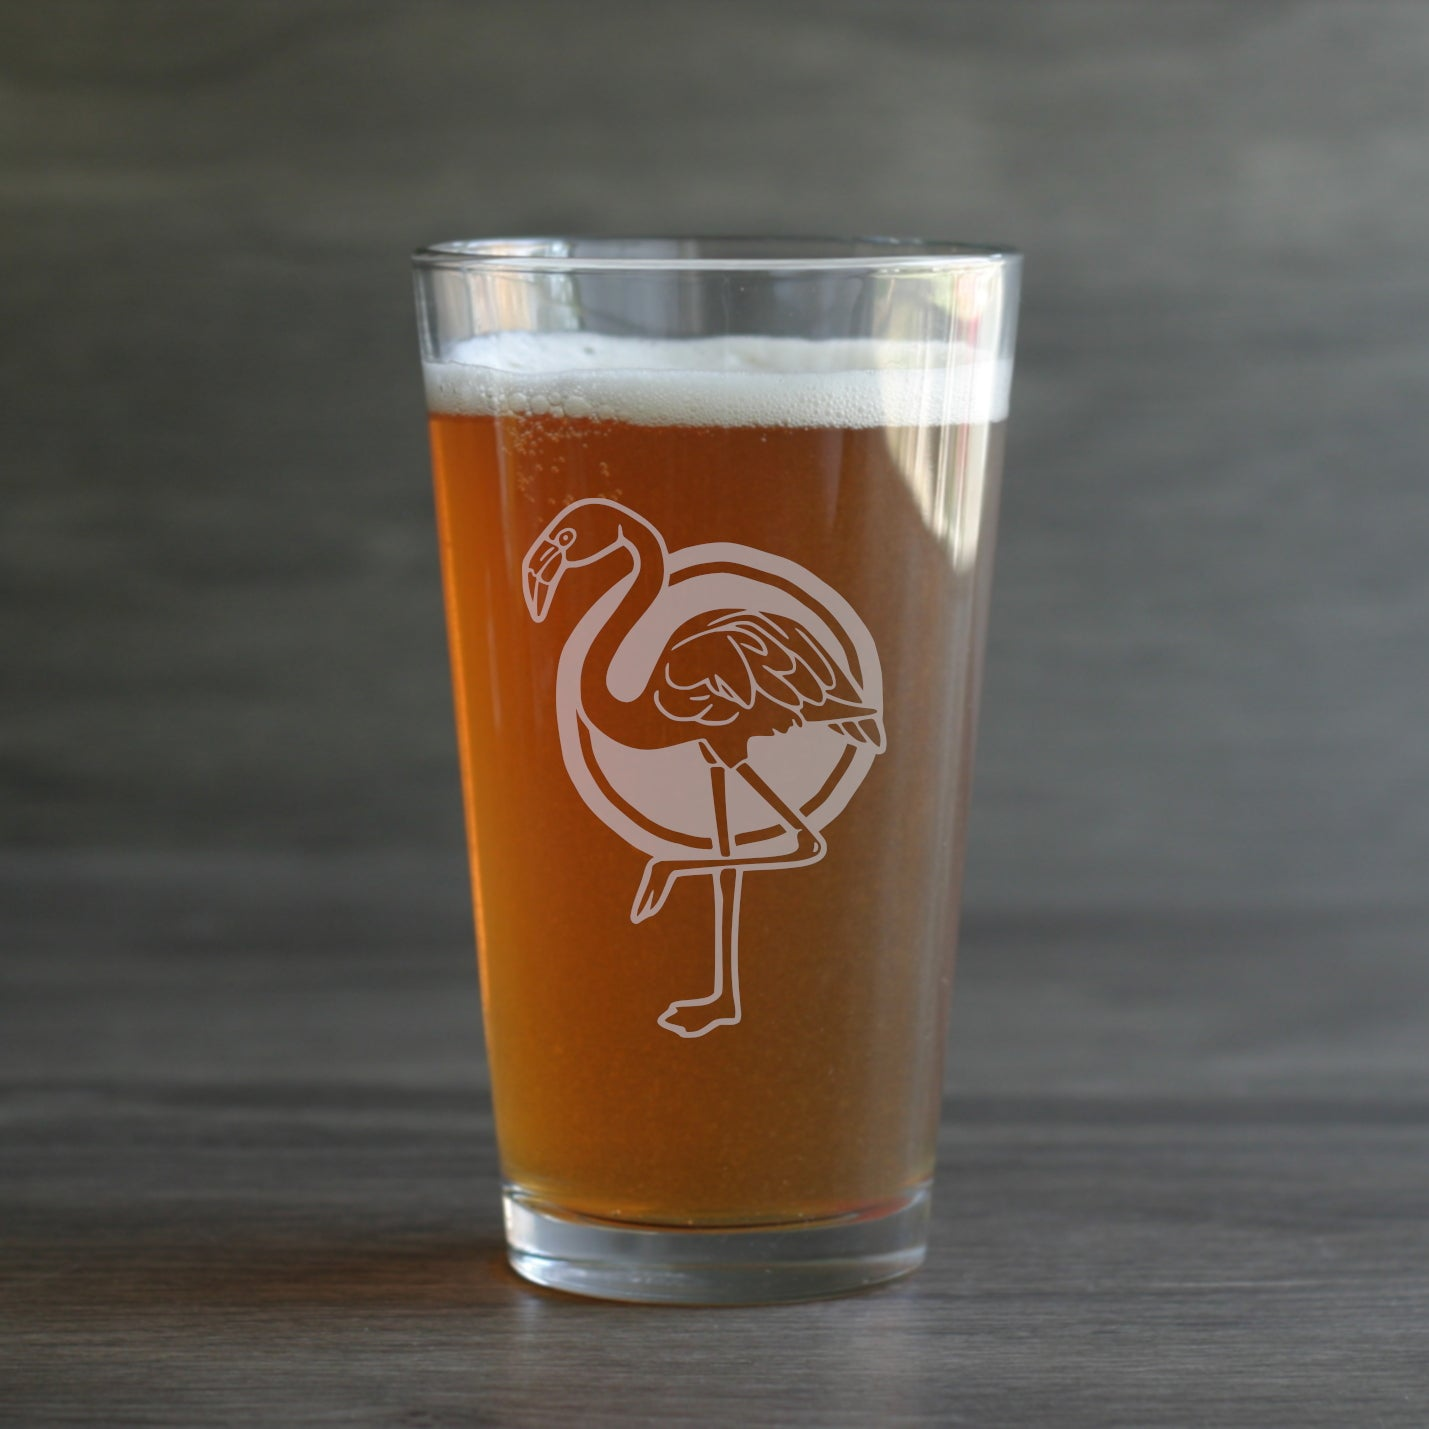 Flamingo pint glass by Bread and Badger